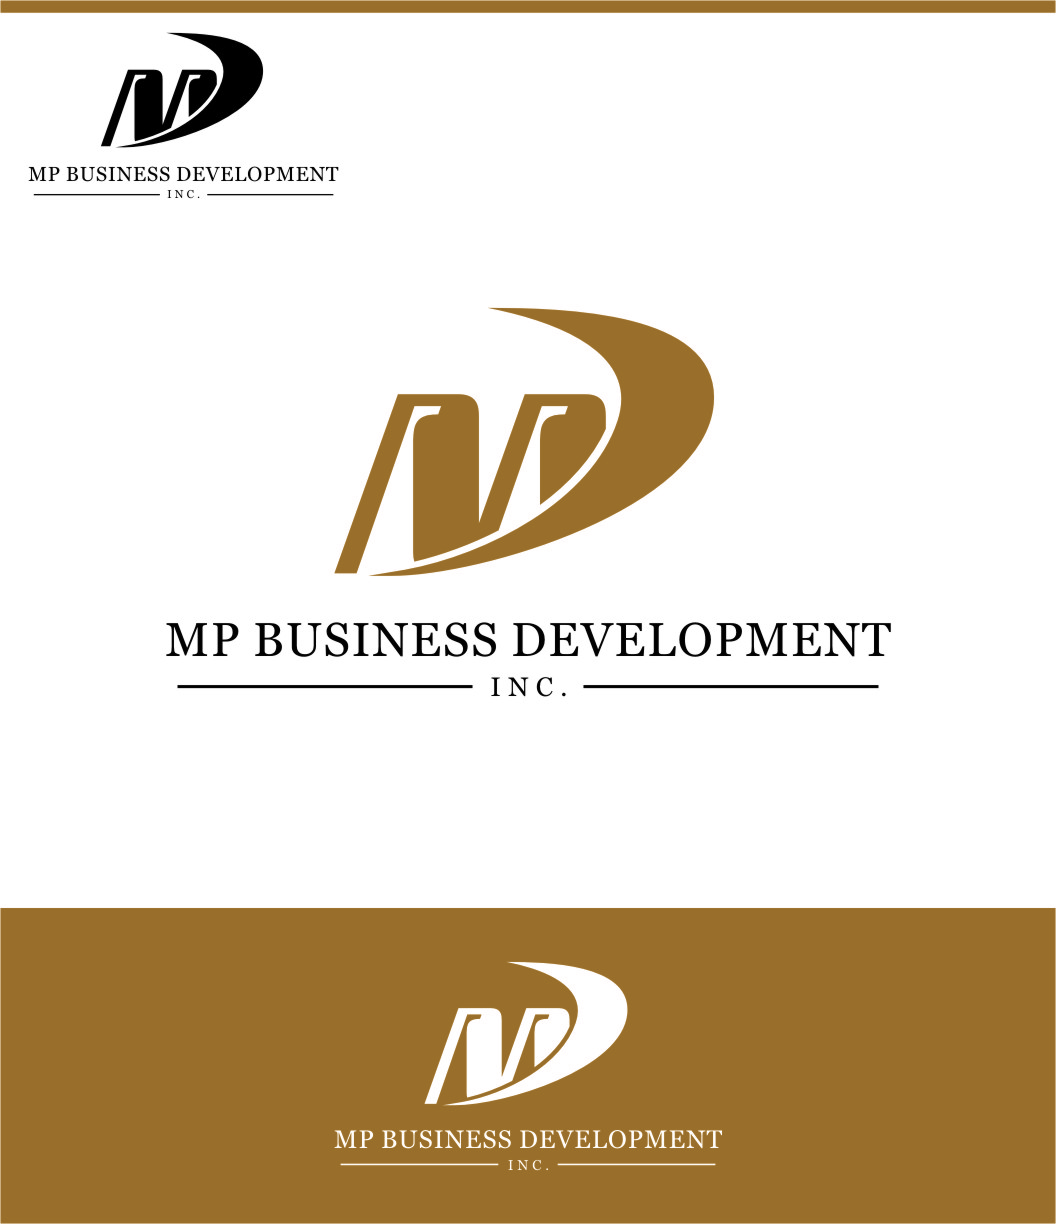 Logo Design by RoSyid Rono-Rene On Java - Entry No. 133 in the Logo Design Contest MP Business Development Inc. Logo Design.